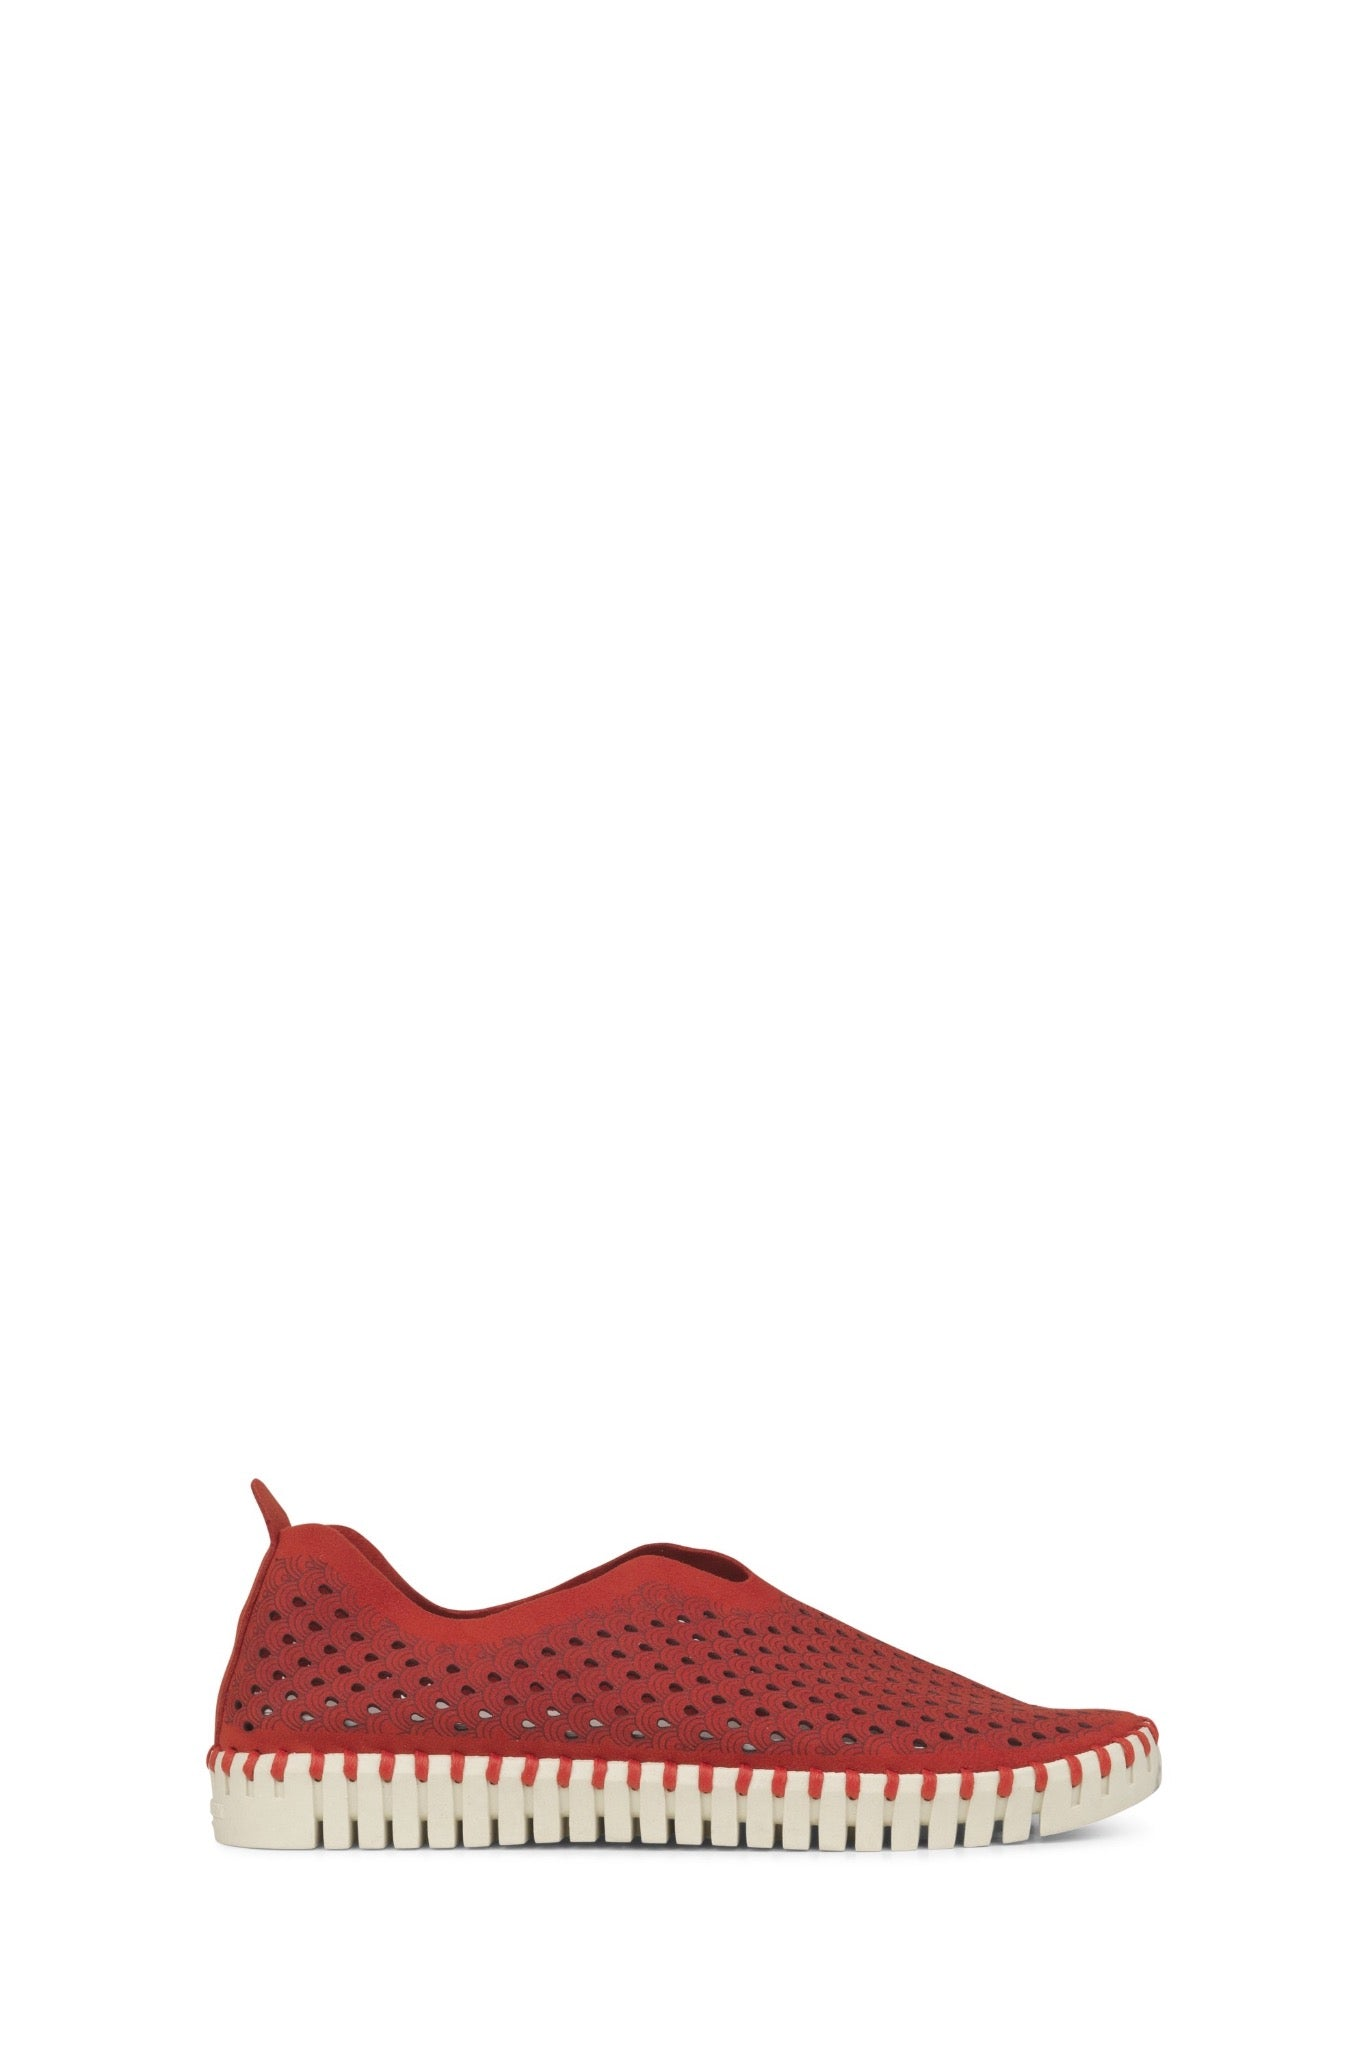 Ilse Jacobsen Tulip shoes in Latte - comfortable, microfibre and natural rubber, washable shoes. Deep Red.